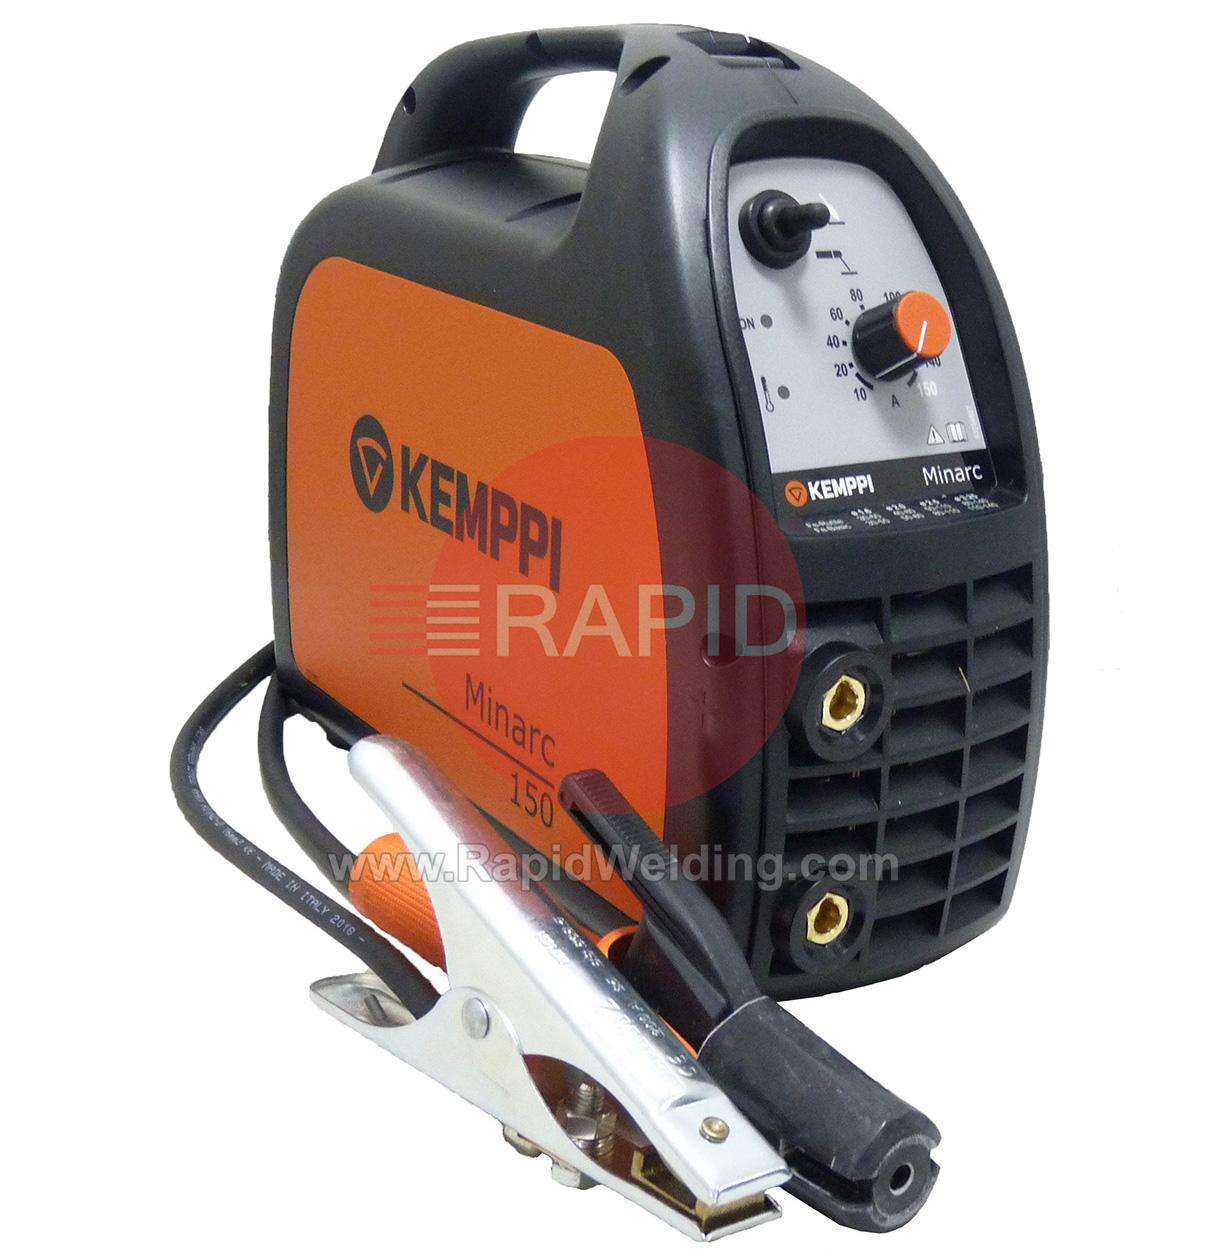 6102150  Kemppi Minarc 150 Arc Welder with Leads, 240v